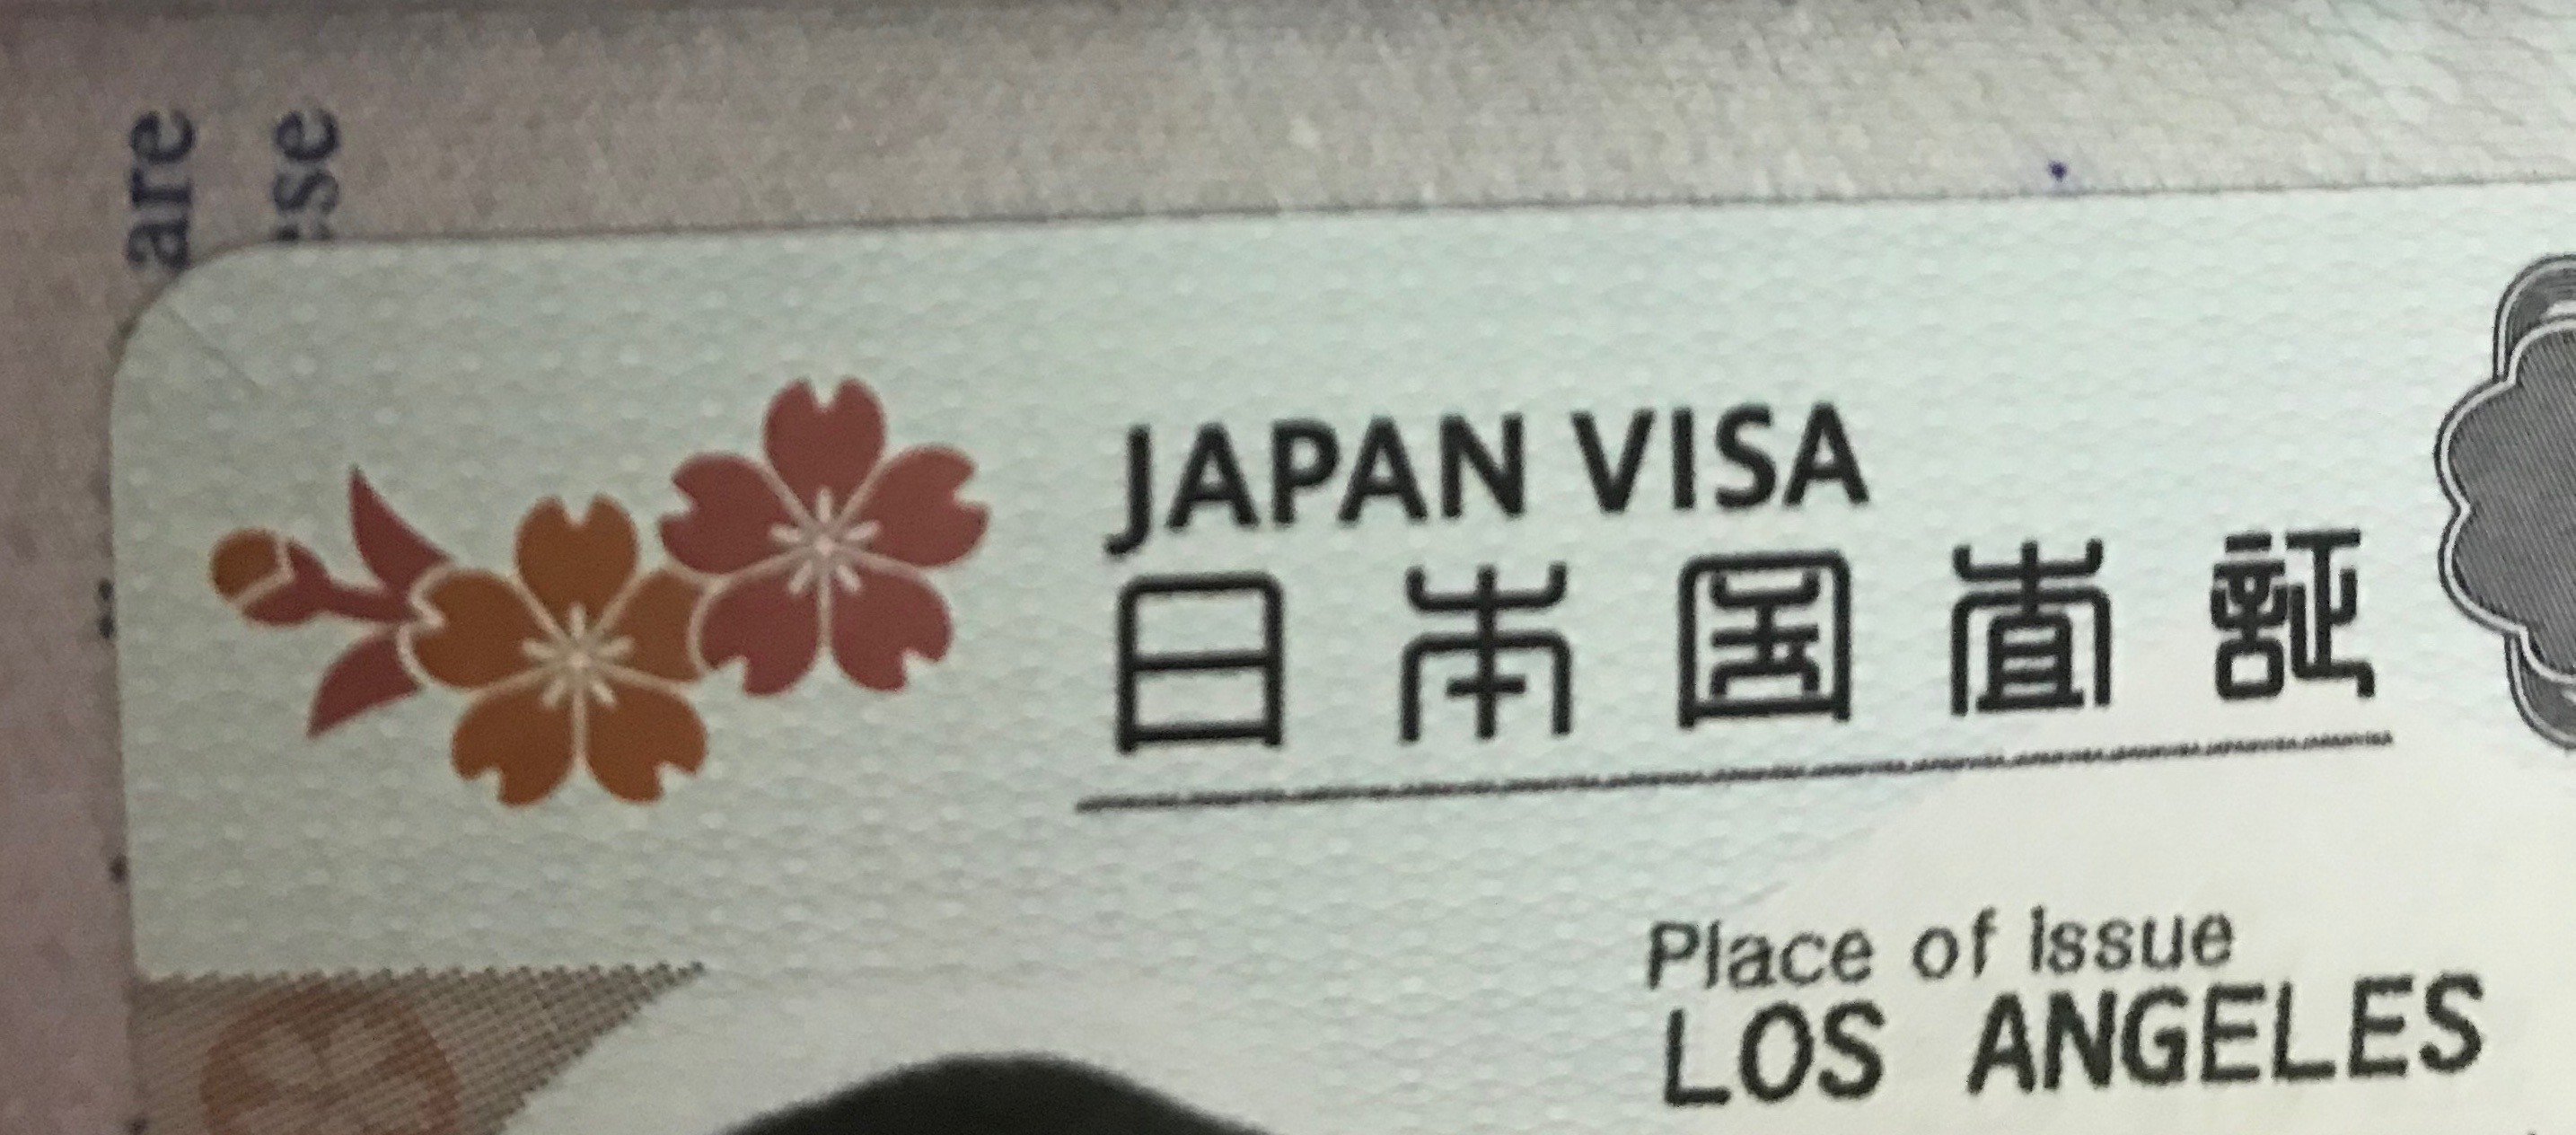 How To Obtain Your Japan Visa: Painless Edition – Casey Corbin Application Form Certificate Of Eligibility Japan on certificate of sponsorship template, certificate of eligibility japan visa, ds-2019 form, certificate of eligibility va, bill of sale form, certificate of eligibility gi bill, certificate of eligibility for godparents,